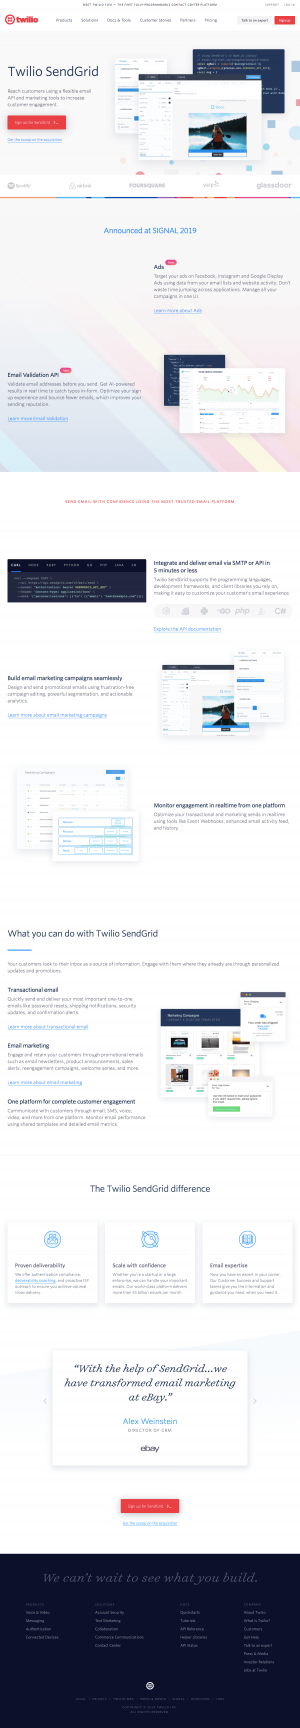 Twilio - Features page 3